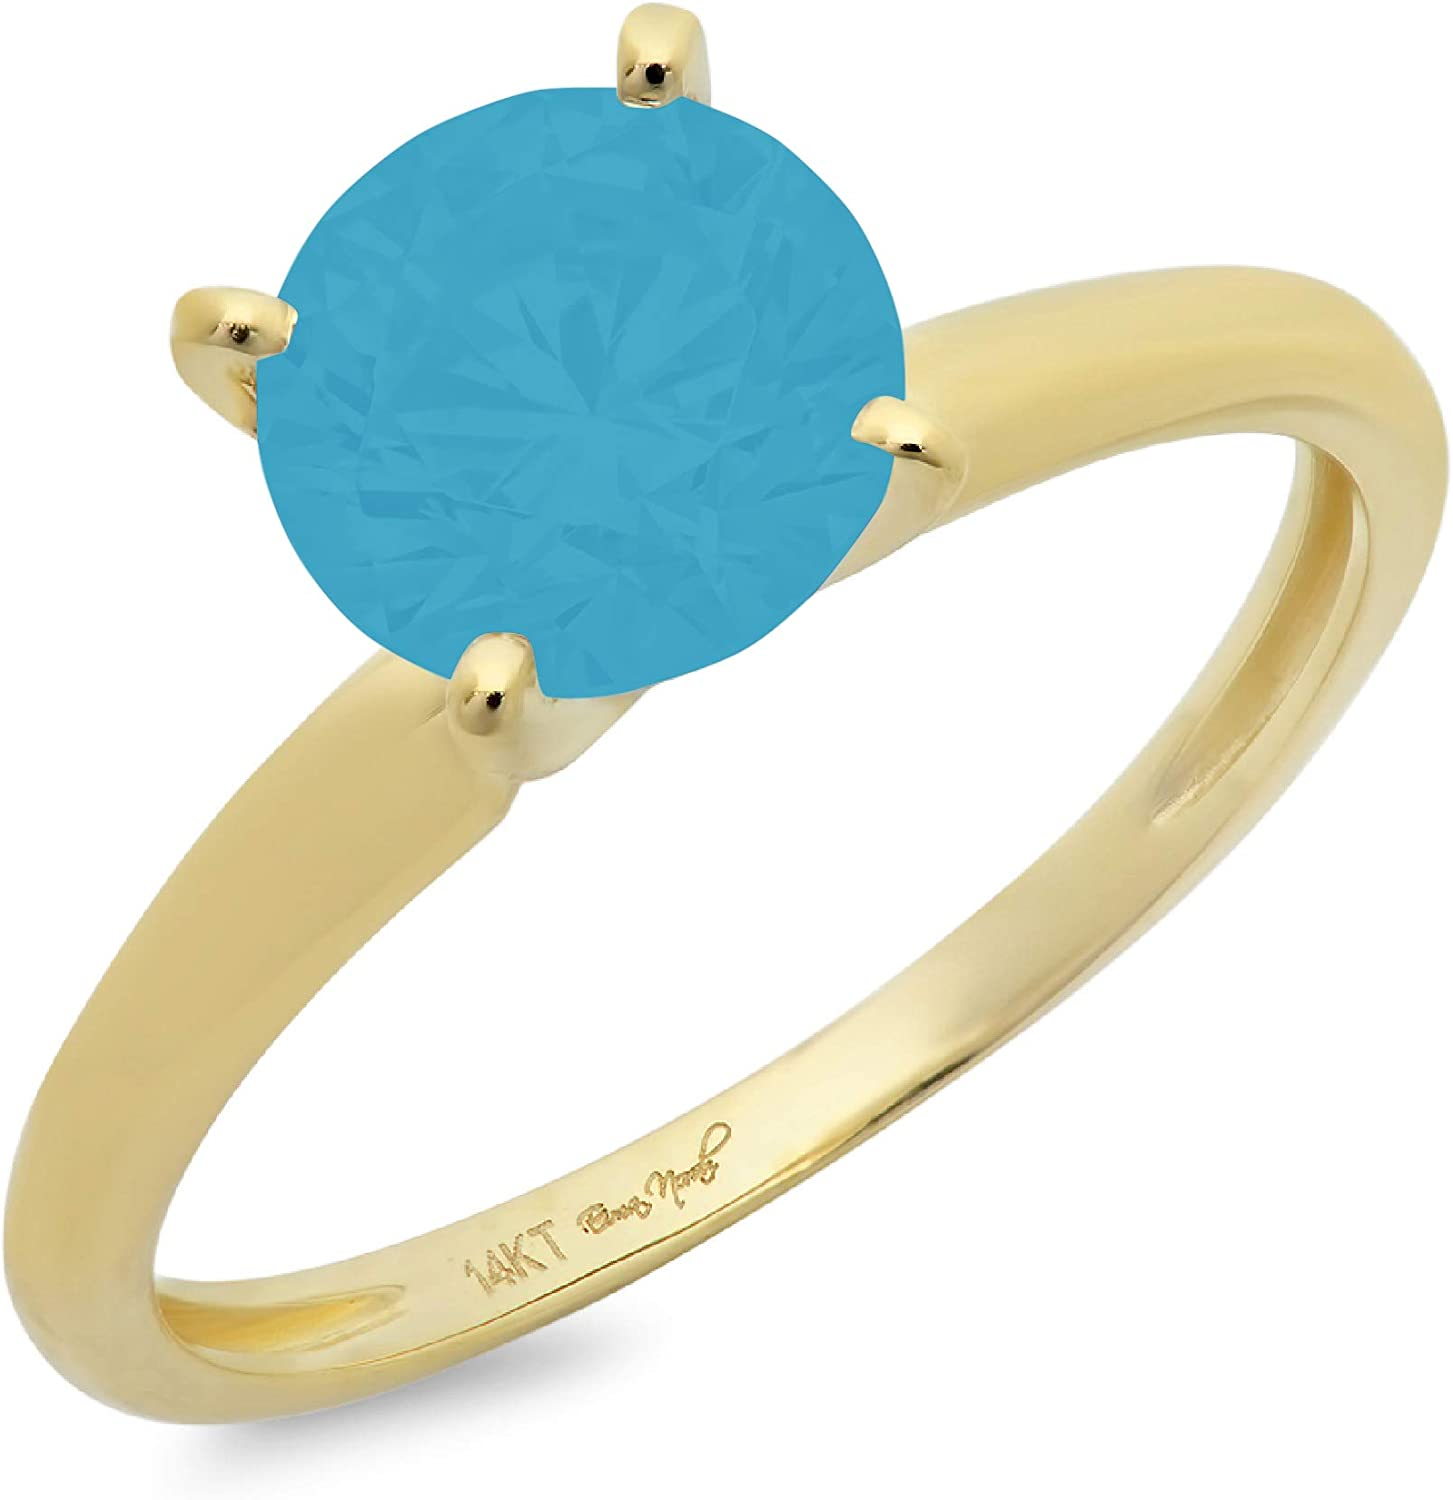 1.9ct Brilliant Round Cut Solitaire Flawless Simulated Cubic Zirconia Blue Turquoise Ideal 4-Prong Engagement Wedding Bridal Promise Anniversary Designer Ring in Solid 14k Yellow Gold for Women